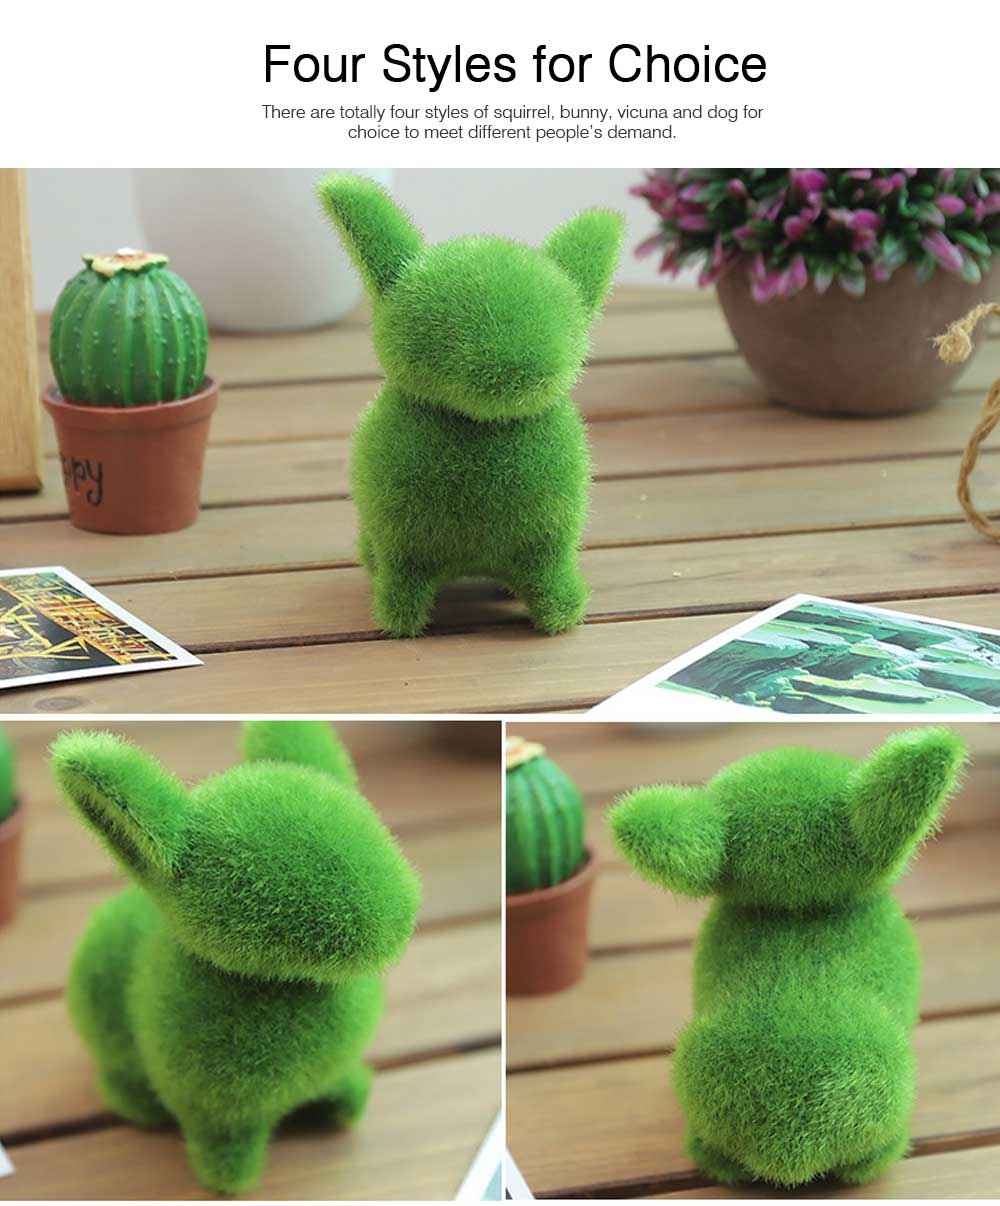 Simulated-grass-made Animal Decorations for Wedding Desktop Creative Animal Decorations for Party Animal Decorations Safari Party Supplies 6